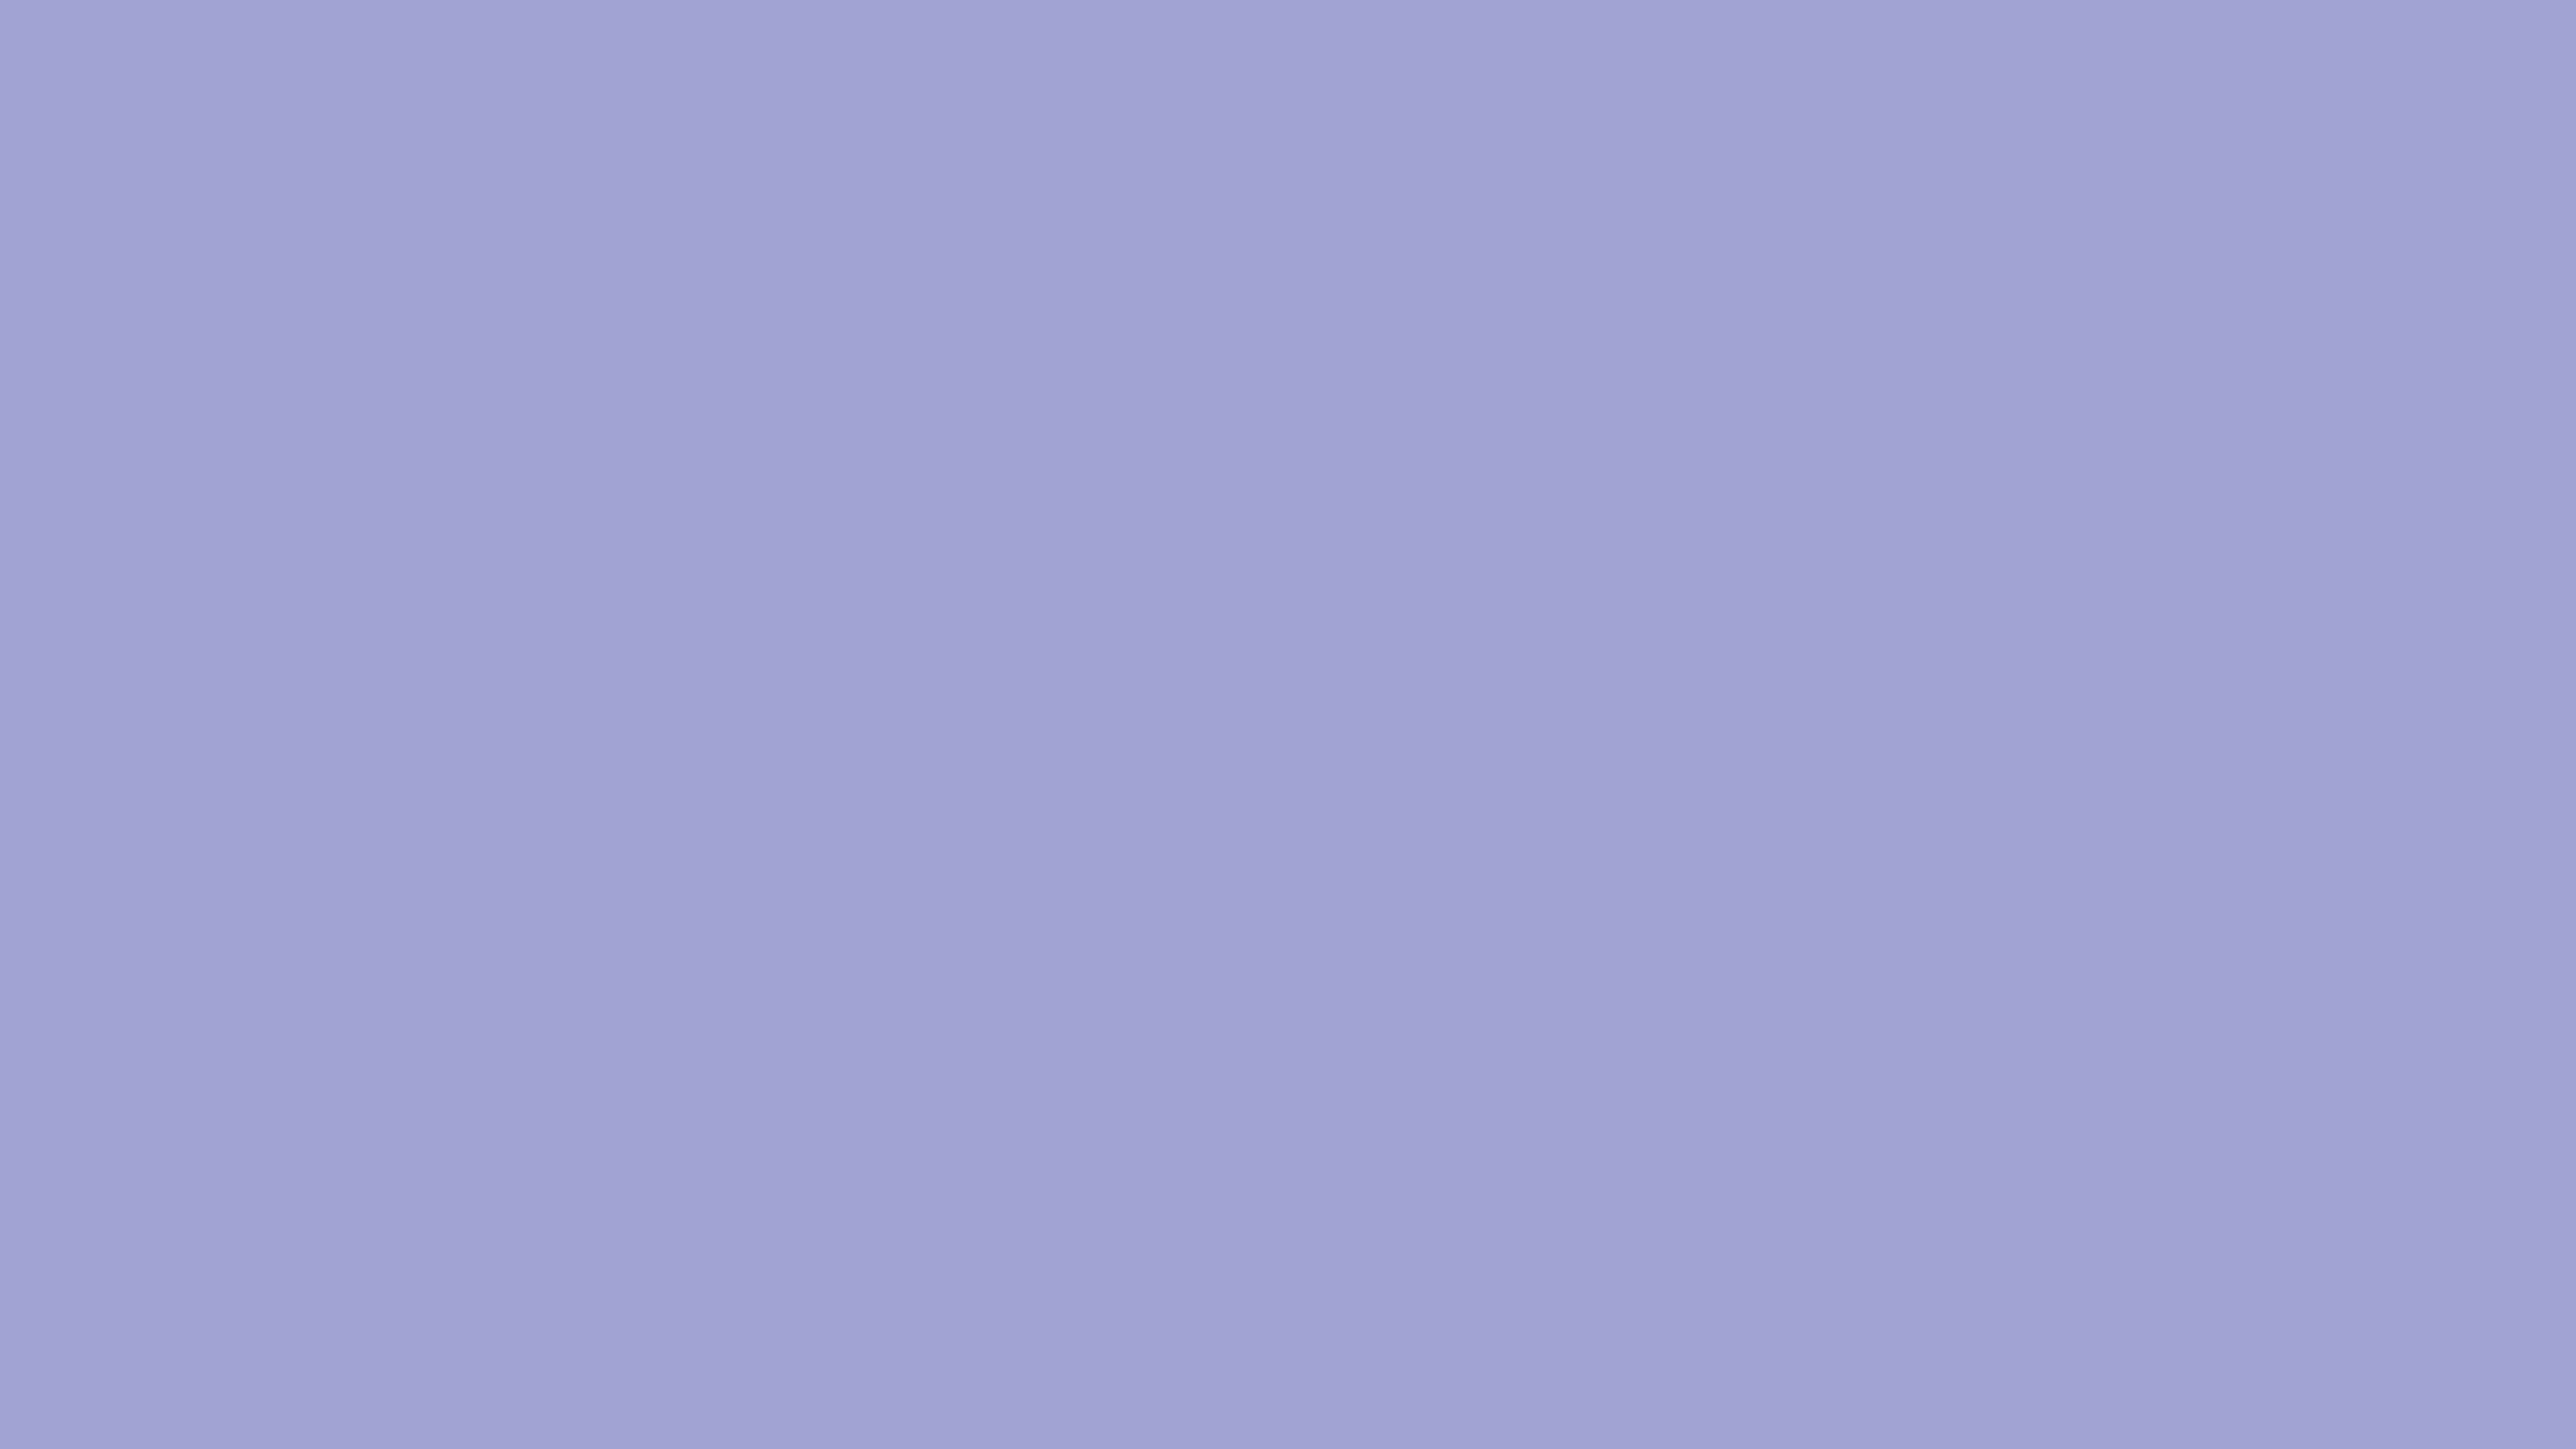 4096x2304 Blue Bell Solid Color Background